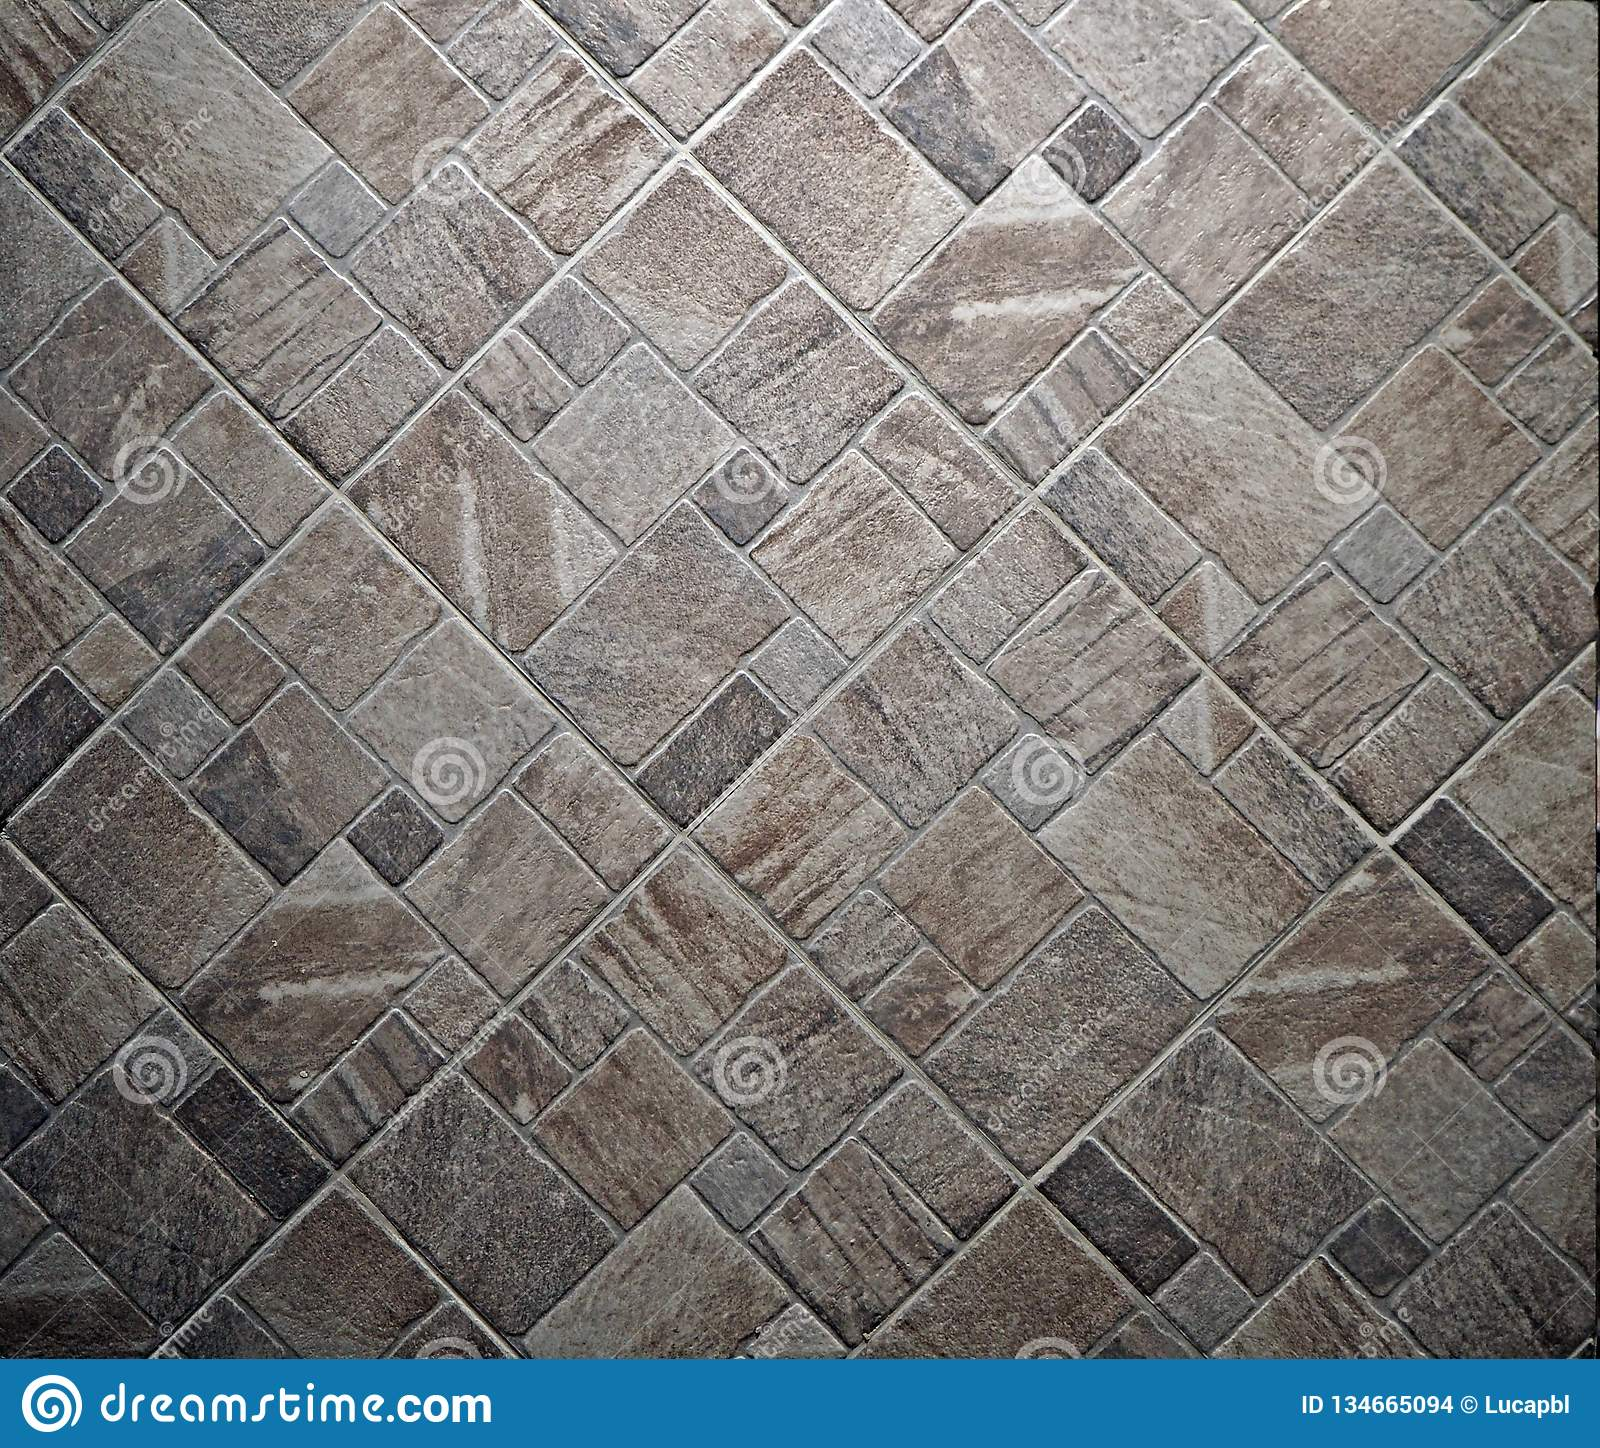 Rustic Stone Floor With Different Size And Shapes Tiles Top View